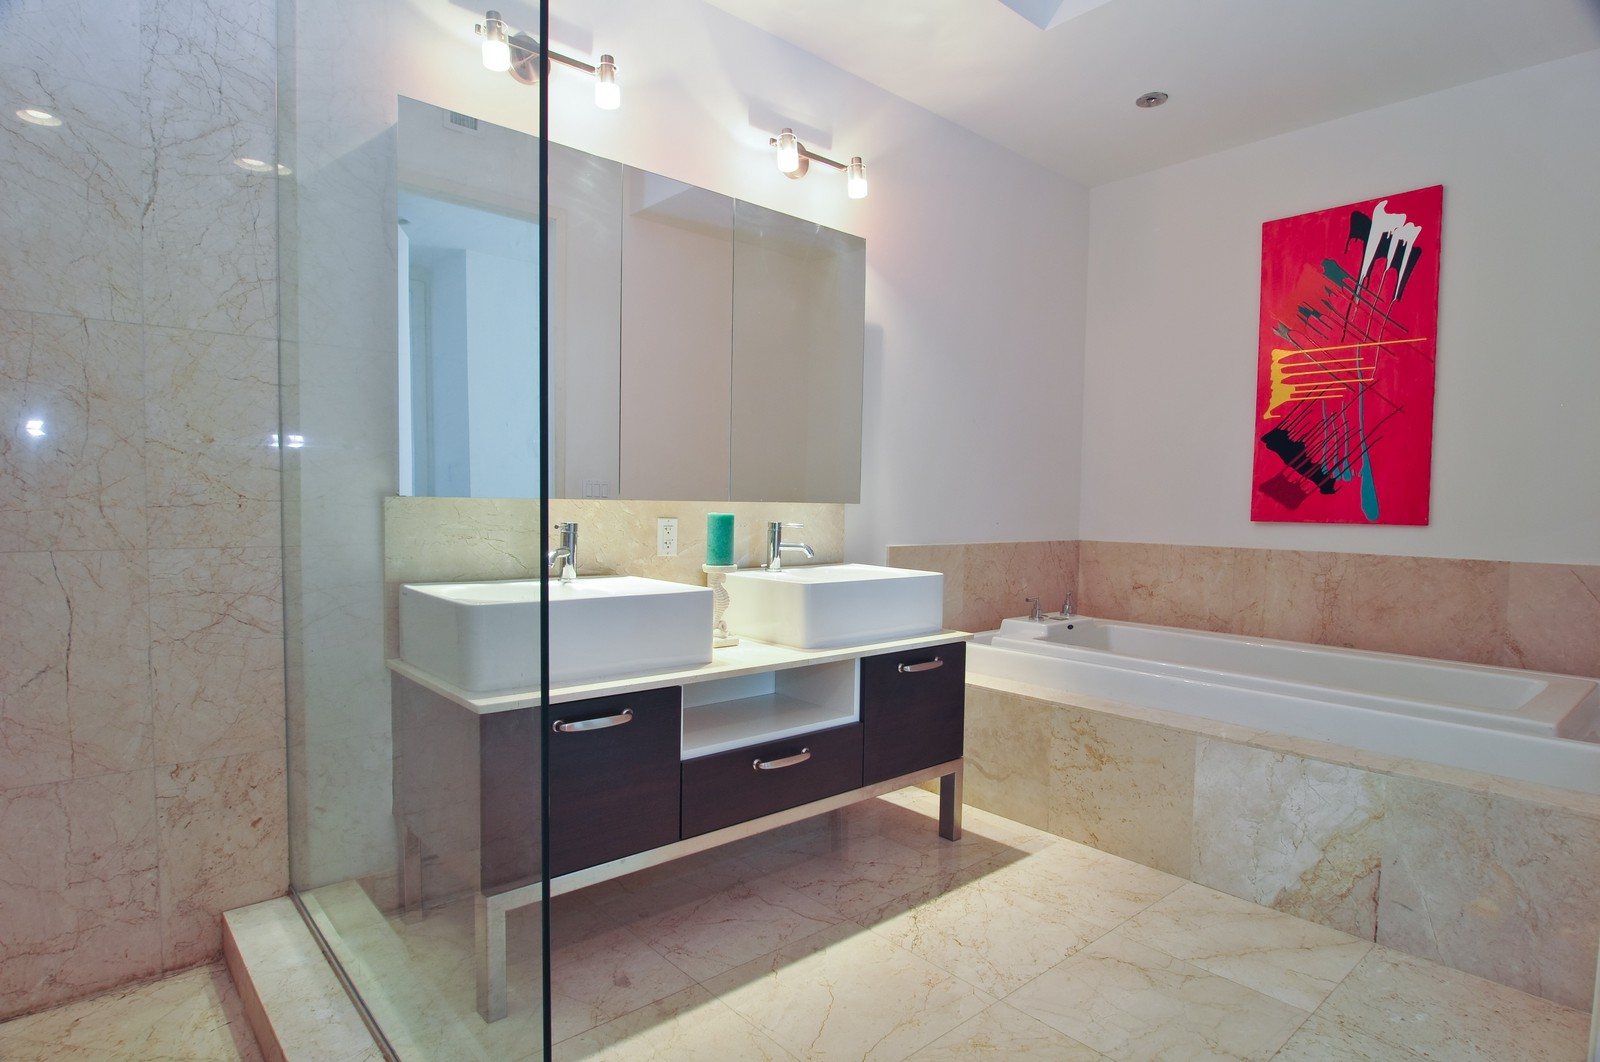 Real Estate Photography - 218 SE 14th St, PH 2, Miami, FL, 33131 - Master Bathroom